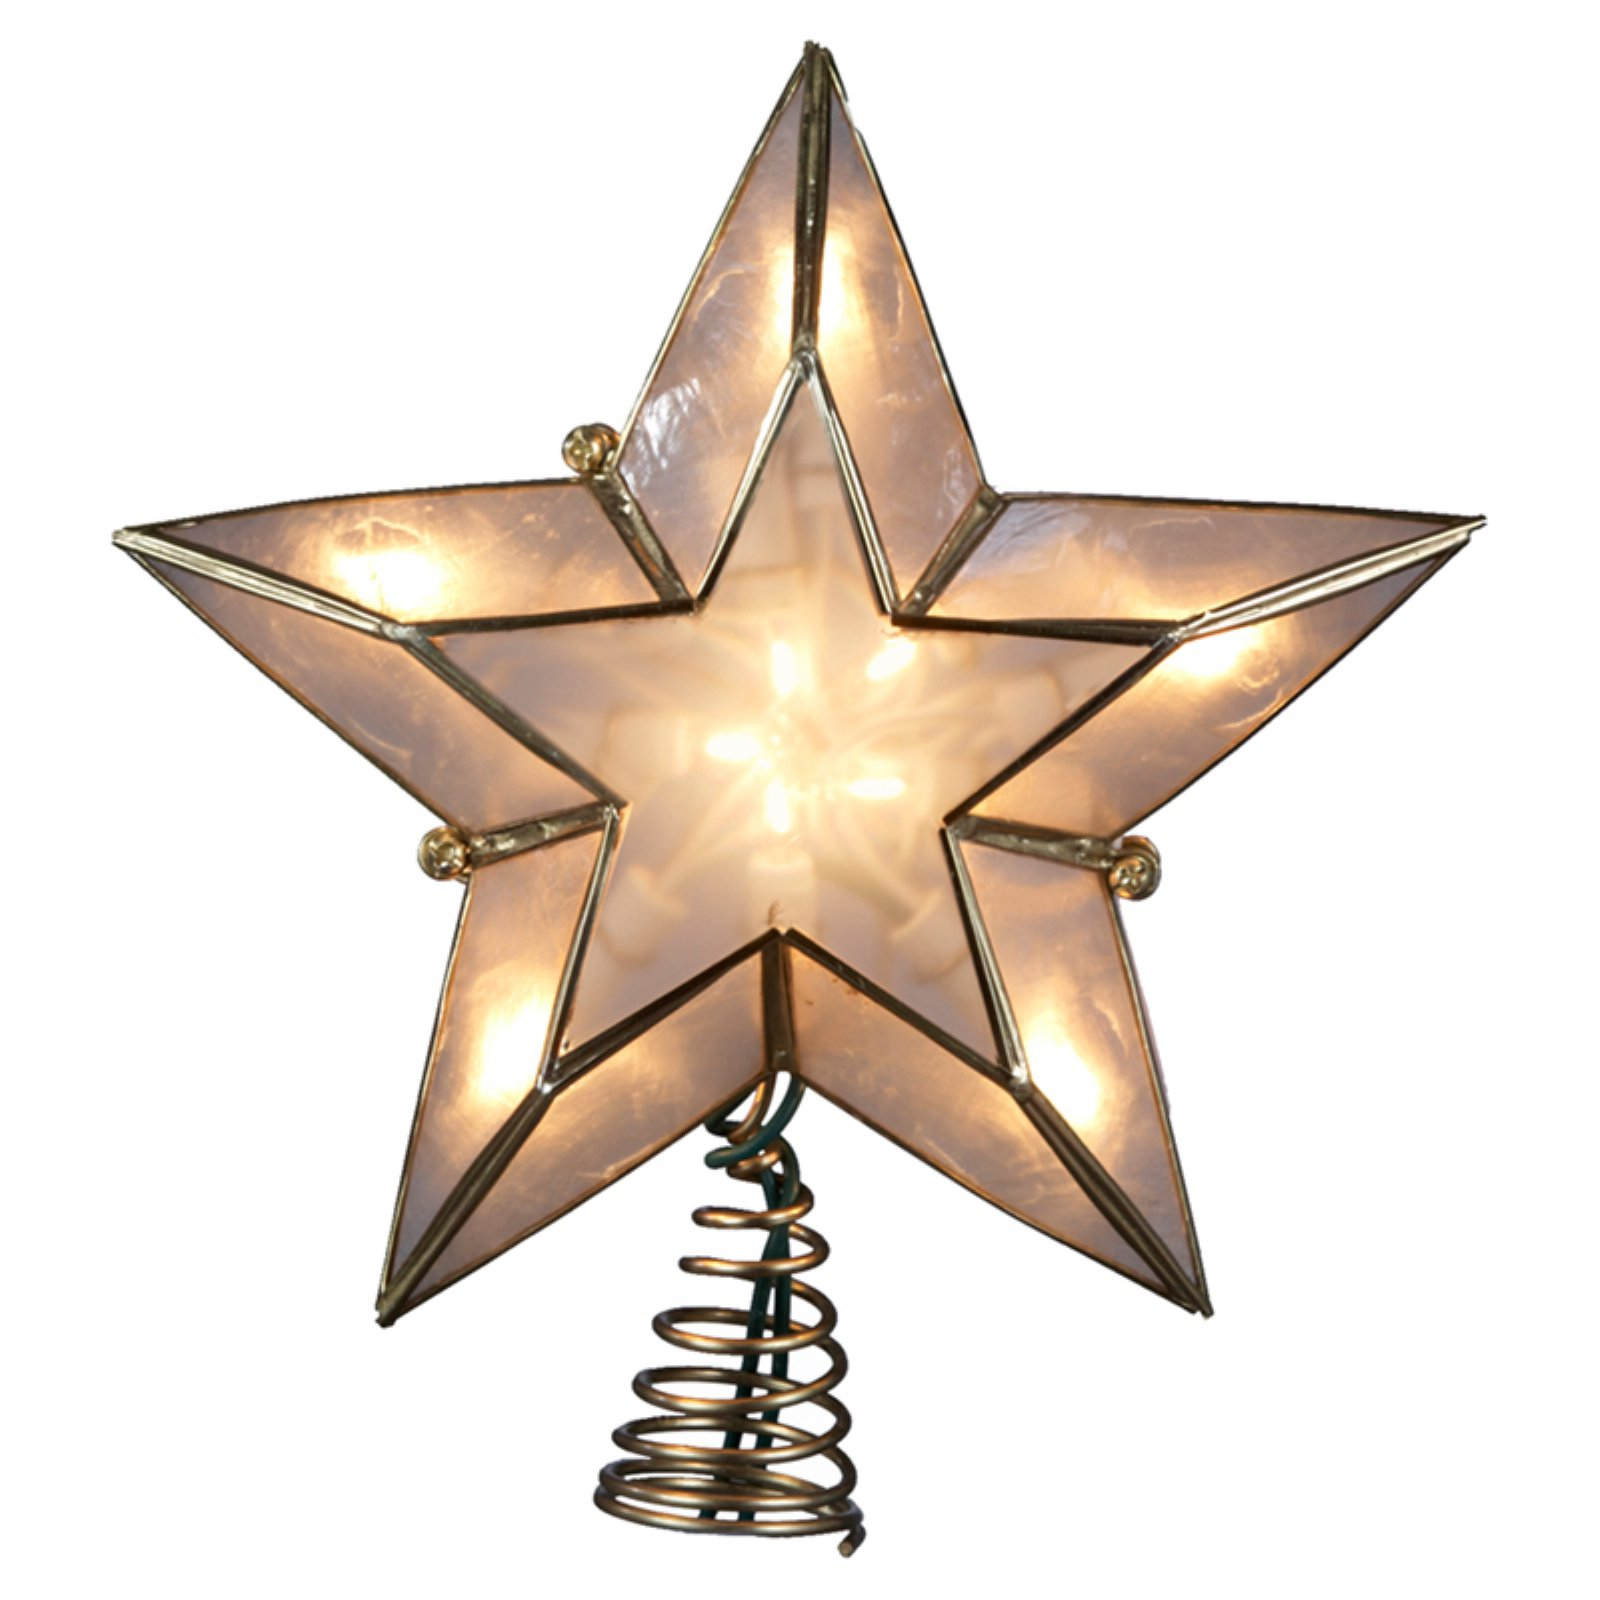 Kurt Adler 10-Light 5-Point Ivory and Gold Capiz Star Treetop